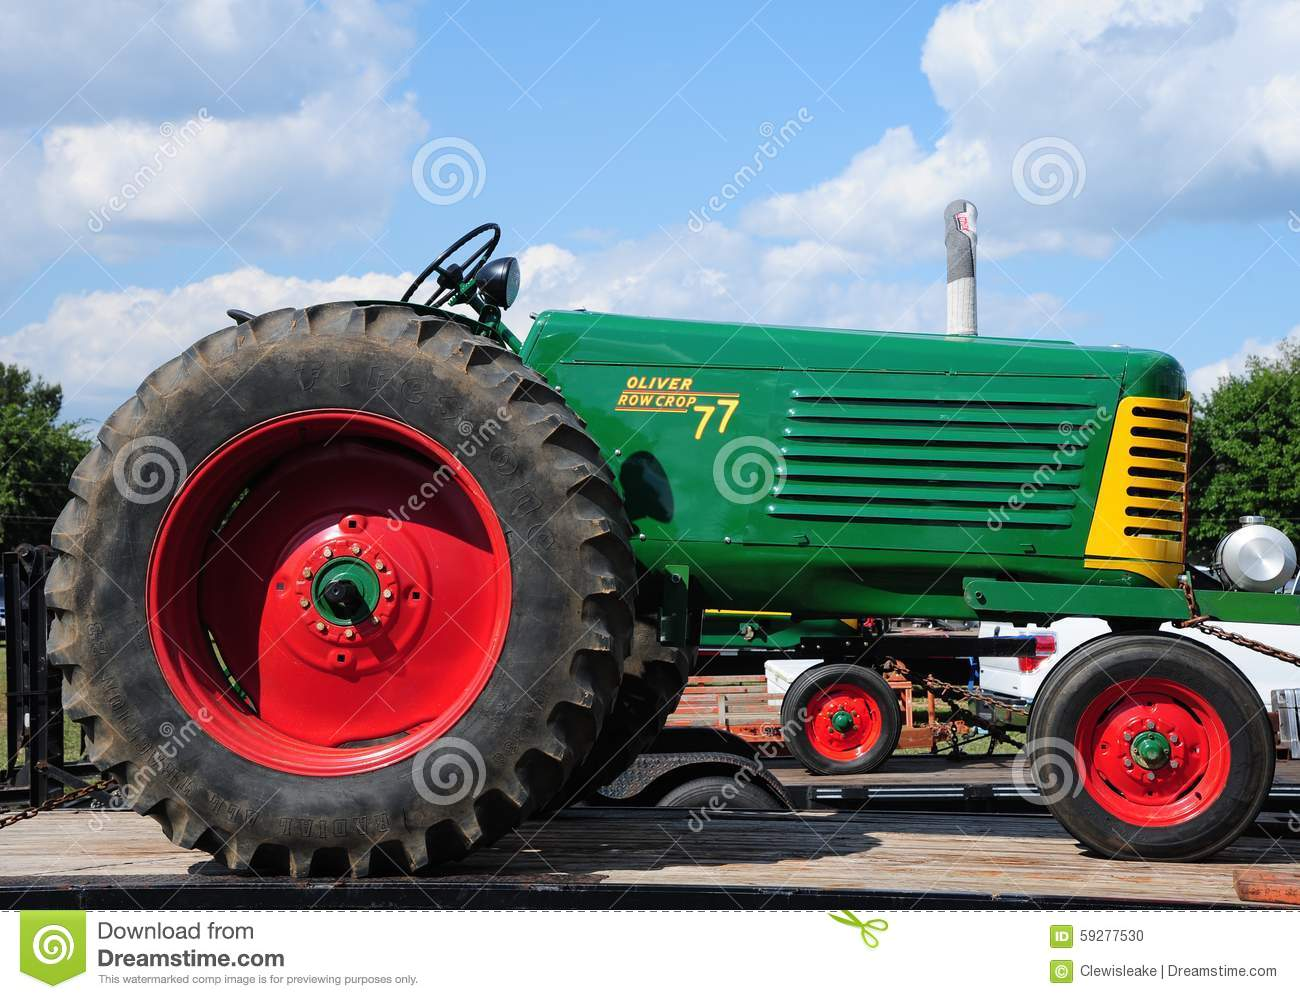 Oliver 77 Antique Farm Tractor  Editorial Image